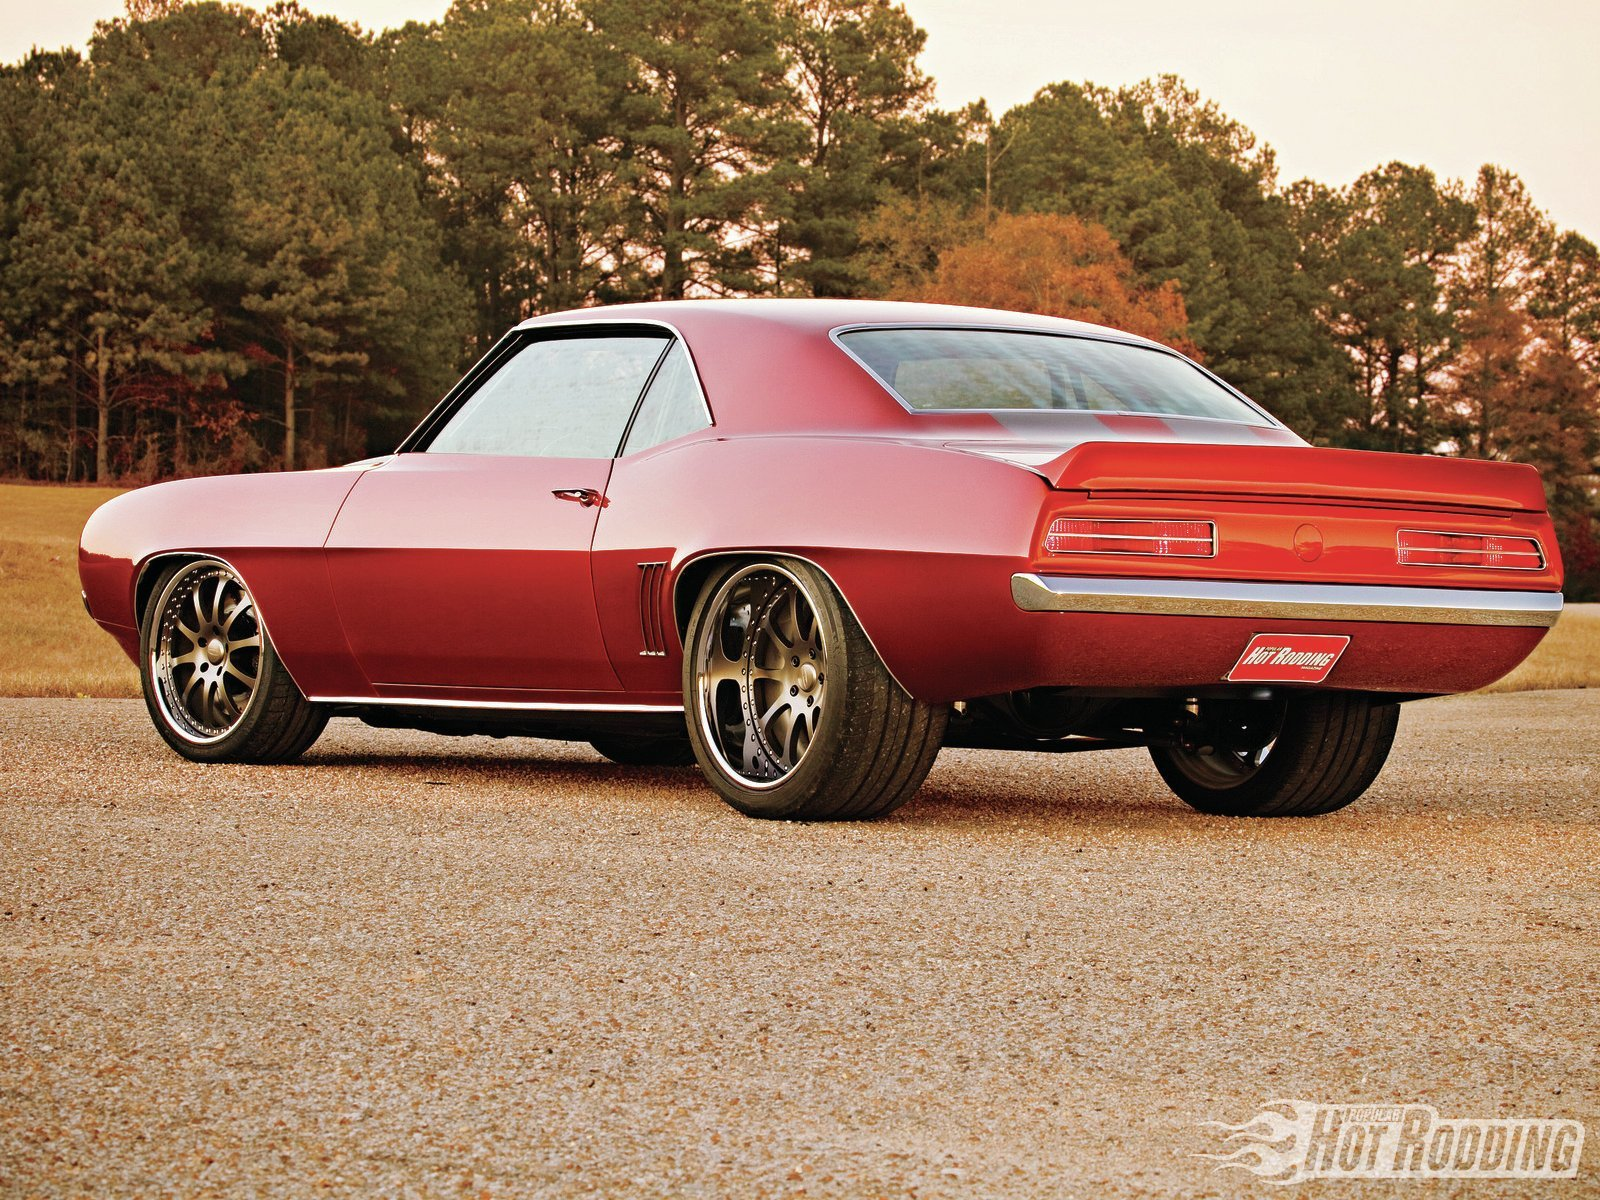 New 1969 Chevrolet Camaro Wallpaper And Background Image On This Month